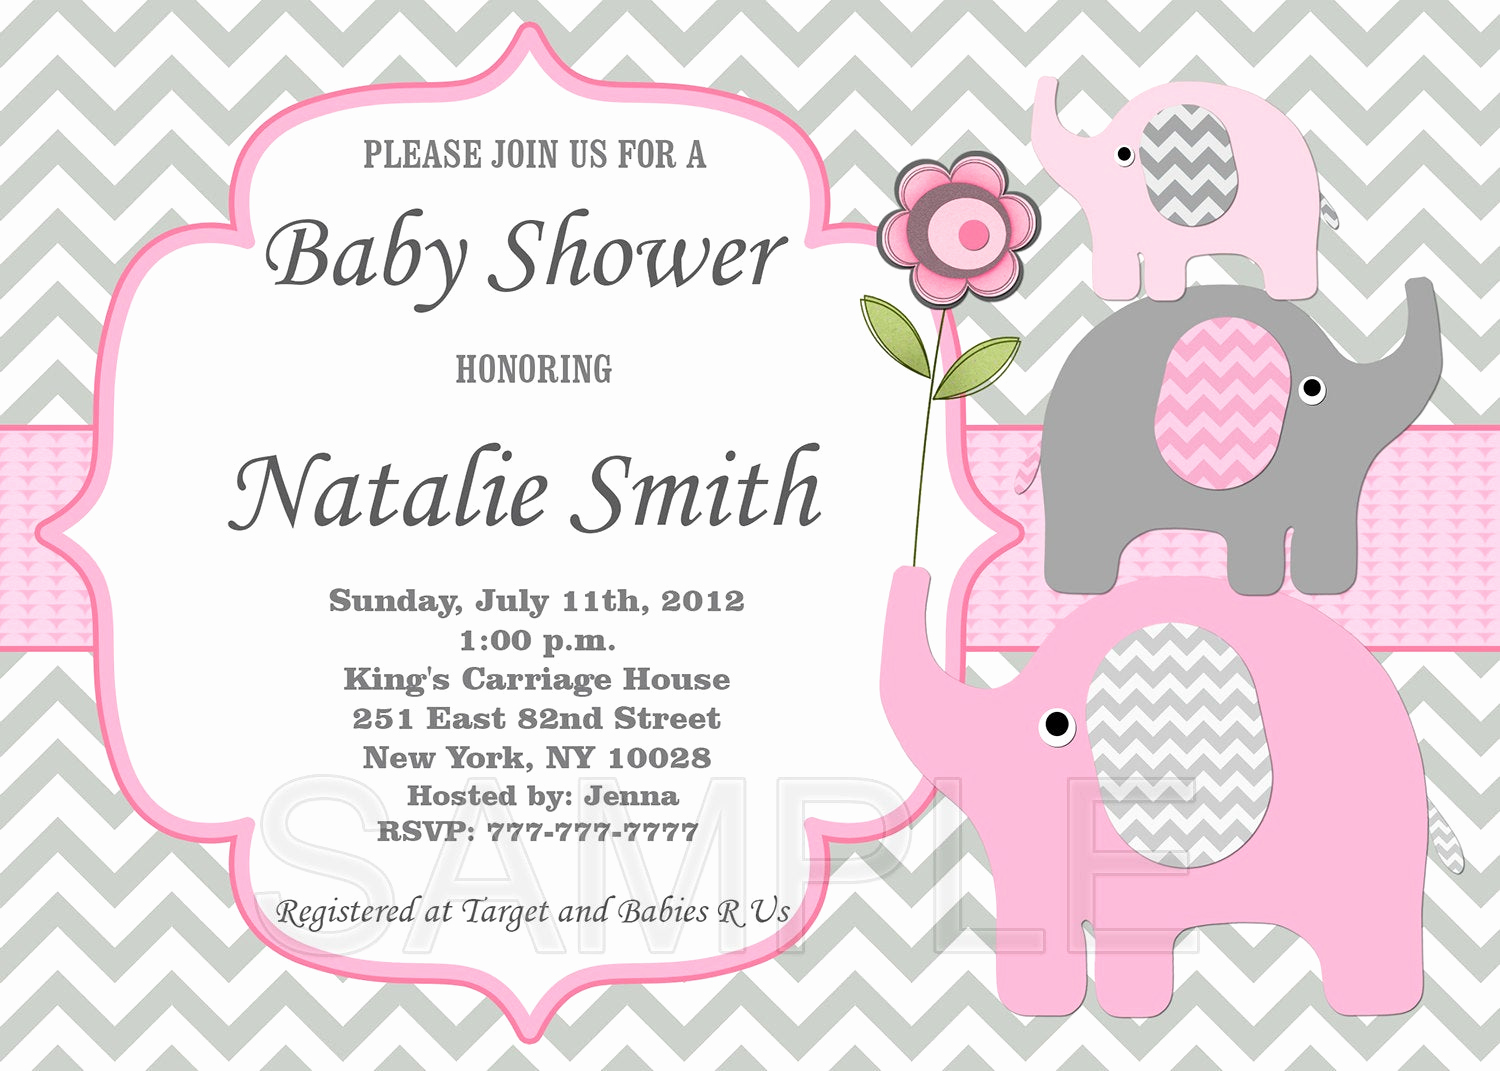 Elephant Baby Shower Invitation Templates Beautiful Girl Baby Shower Invitation Elephant Baby Shower by Diymyparty